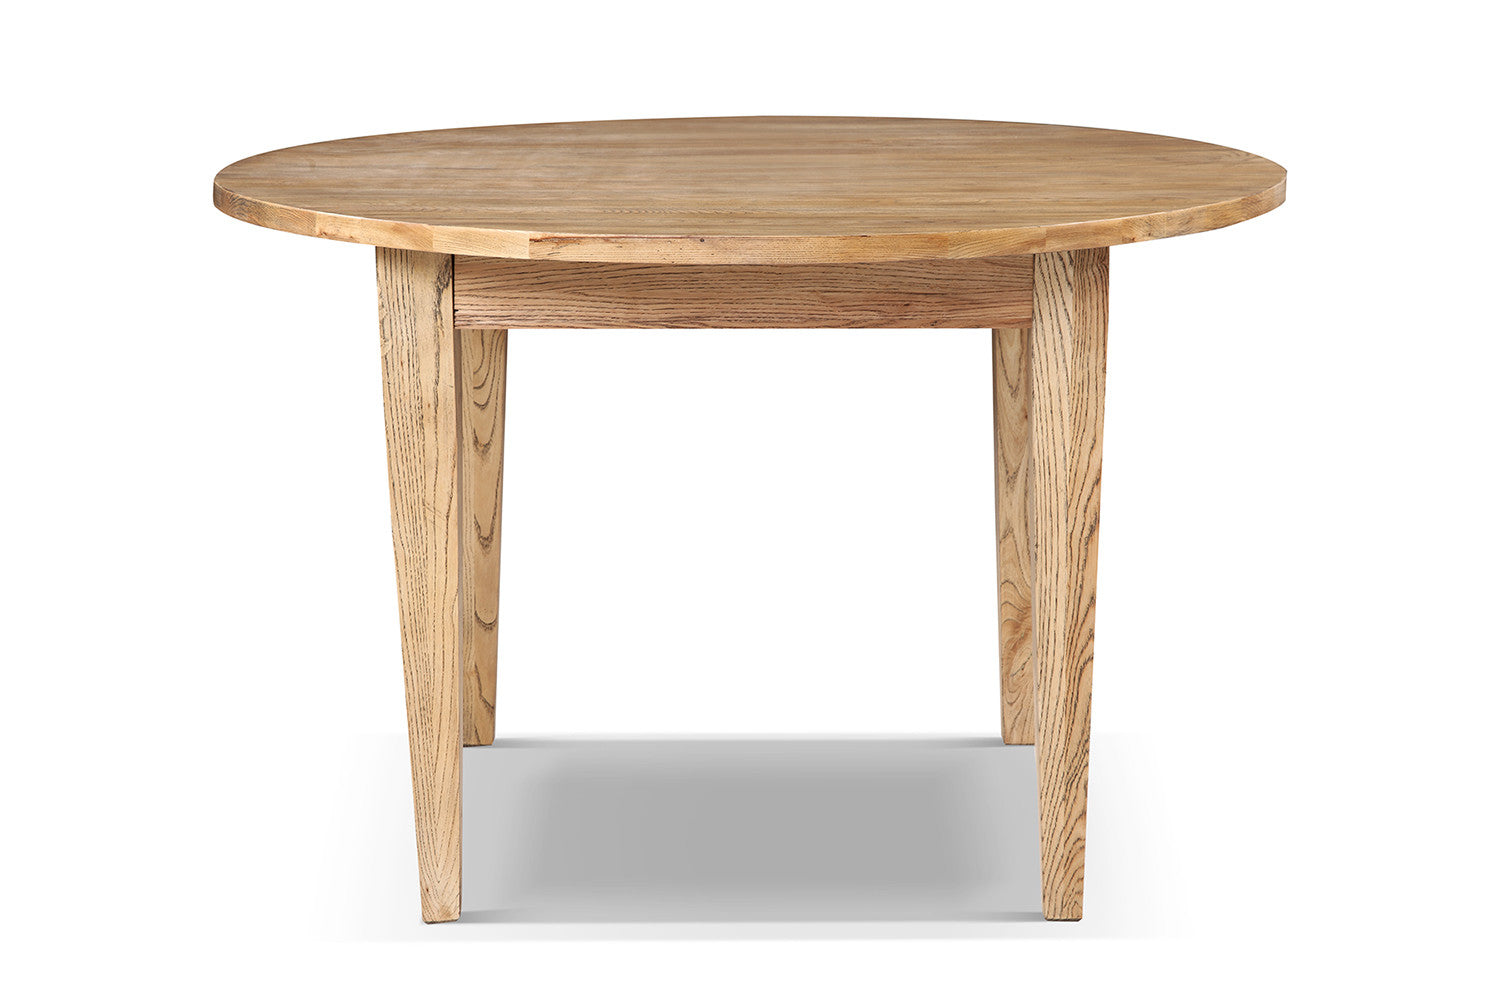 Table de cuisine cottage ronde en bois rose moore for Table ronde en bois